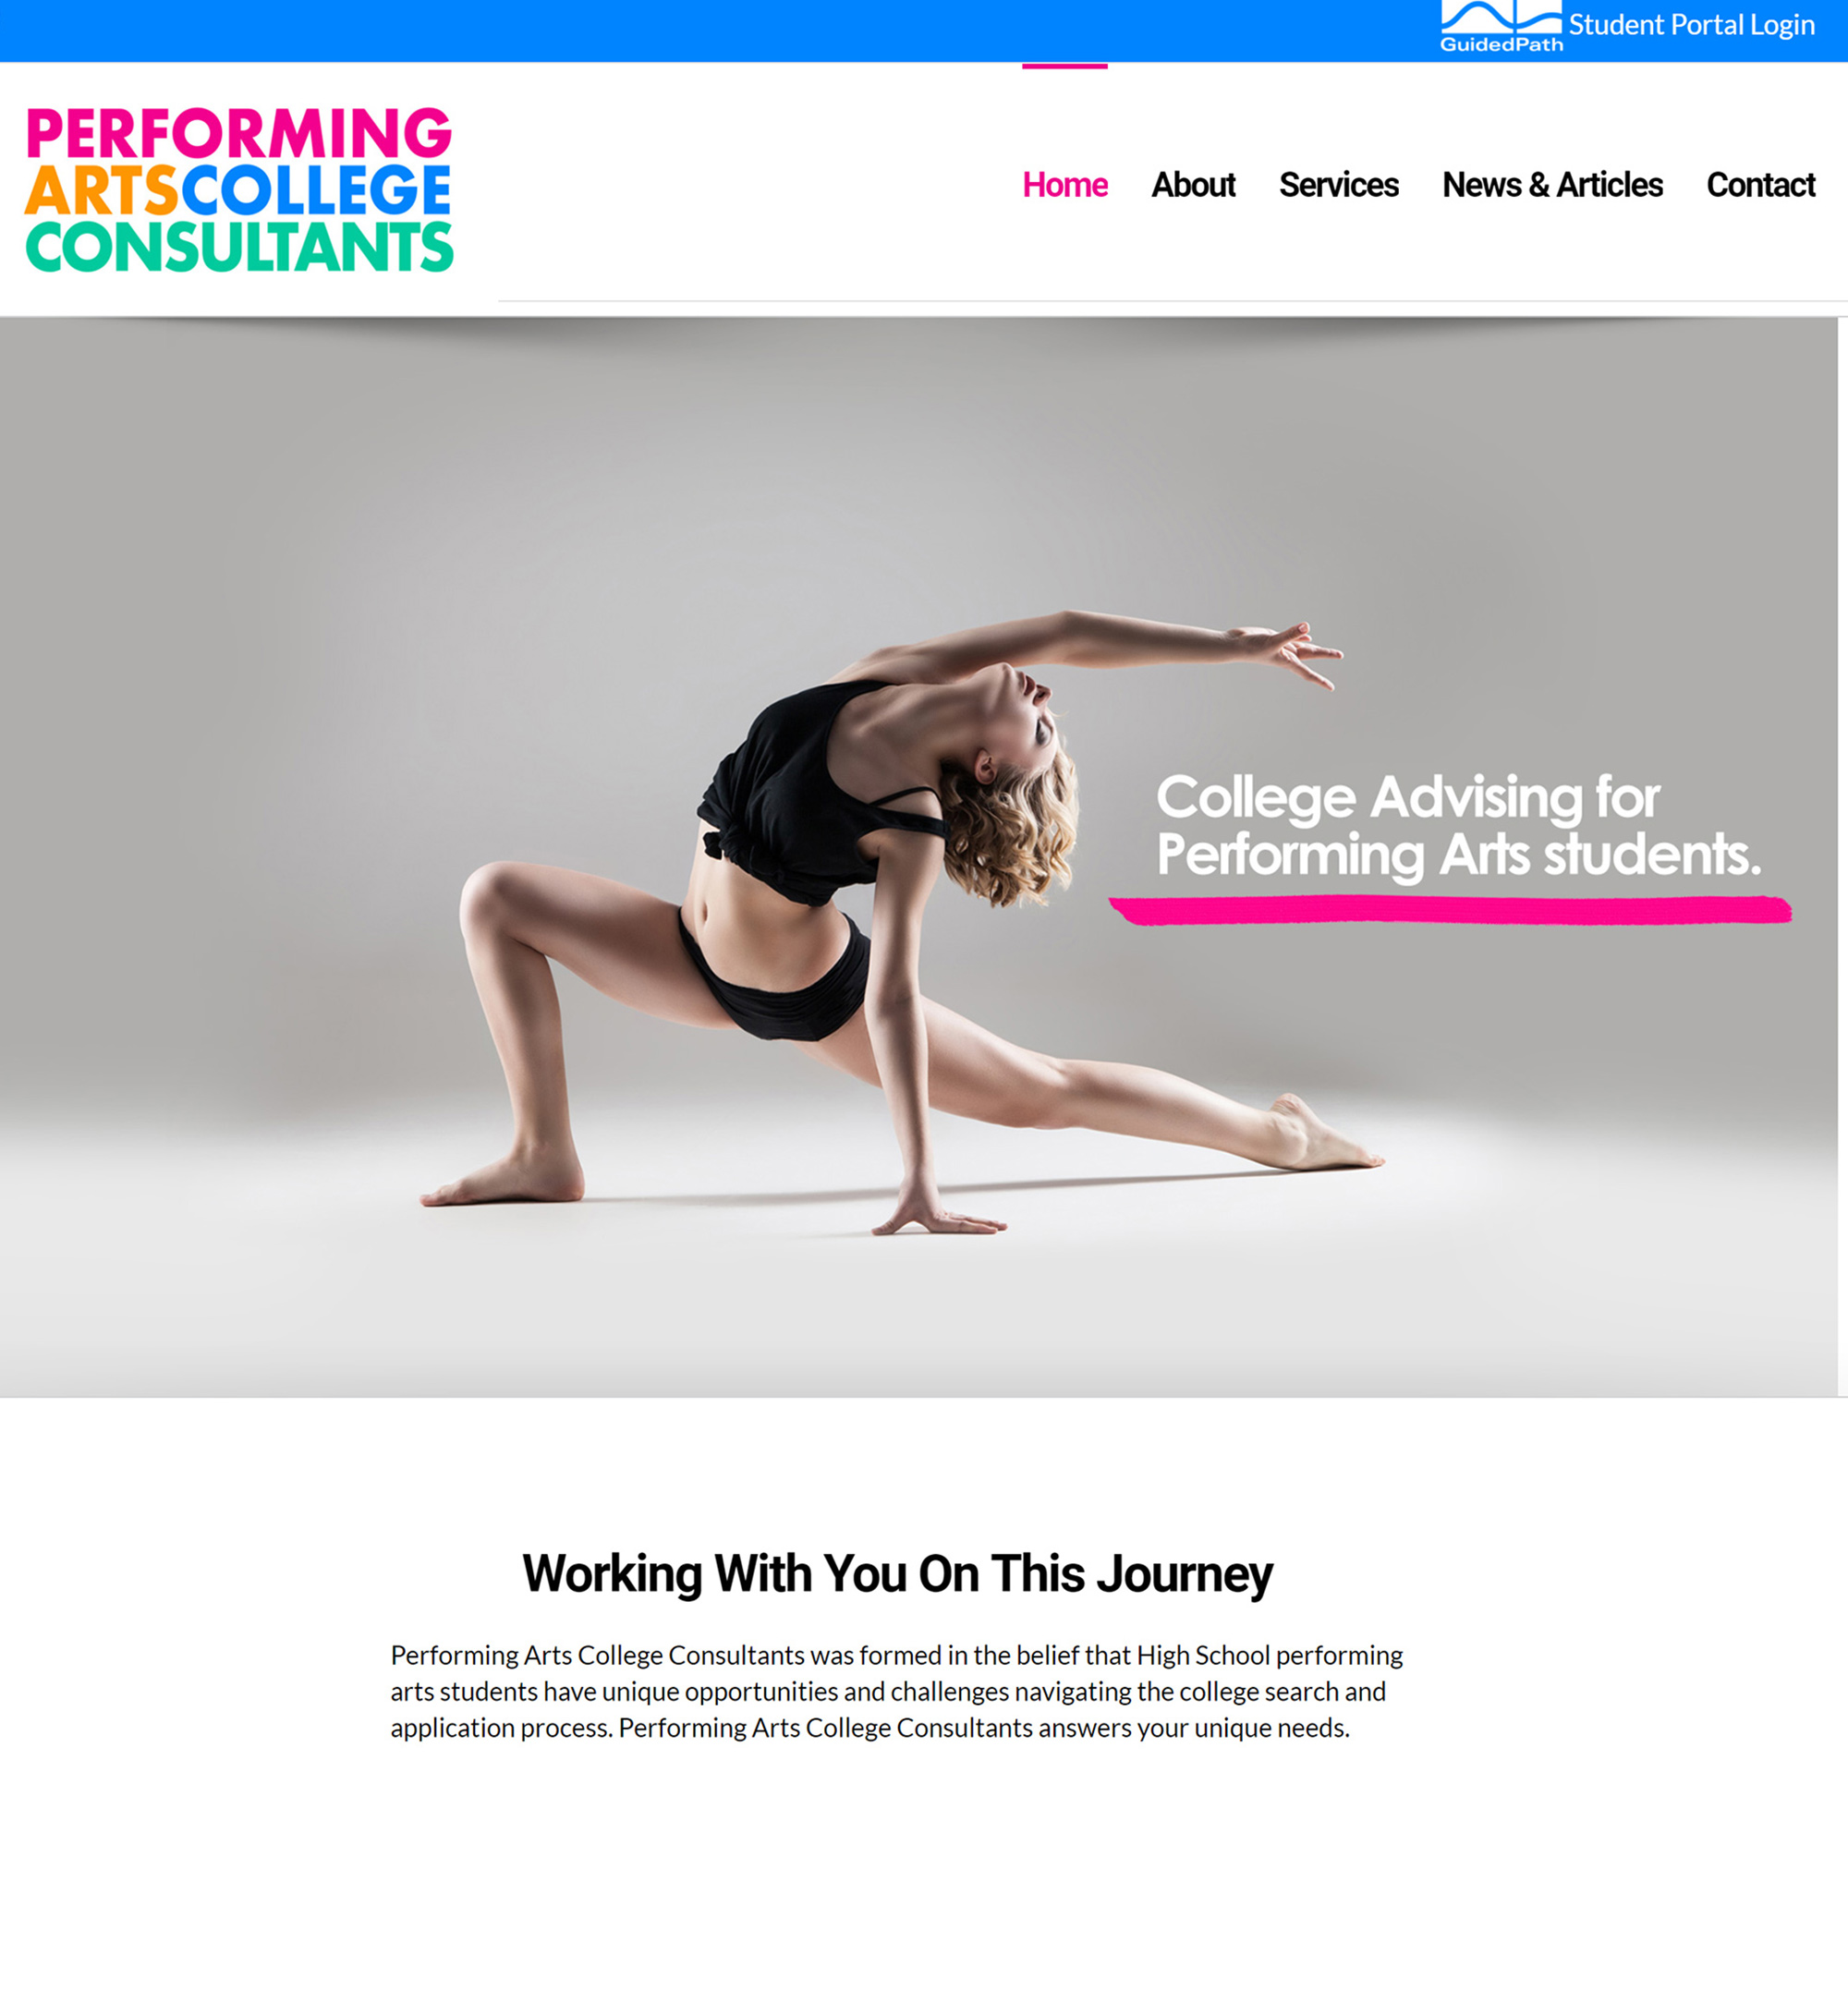 Performing Arts College Consultants website picture. www.performingsartscollegeconsult.com